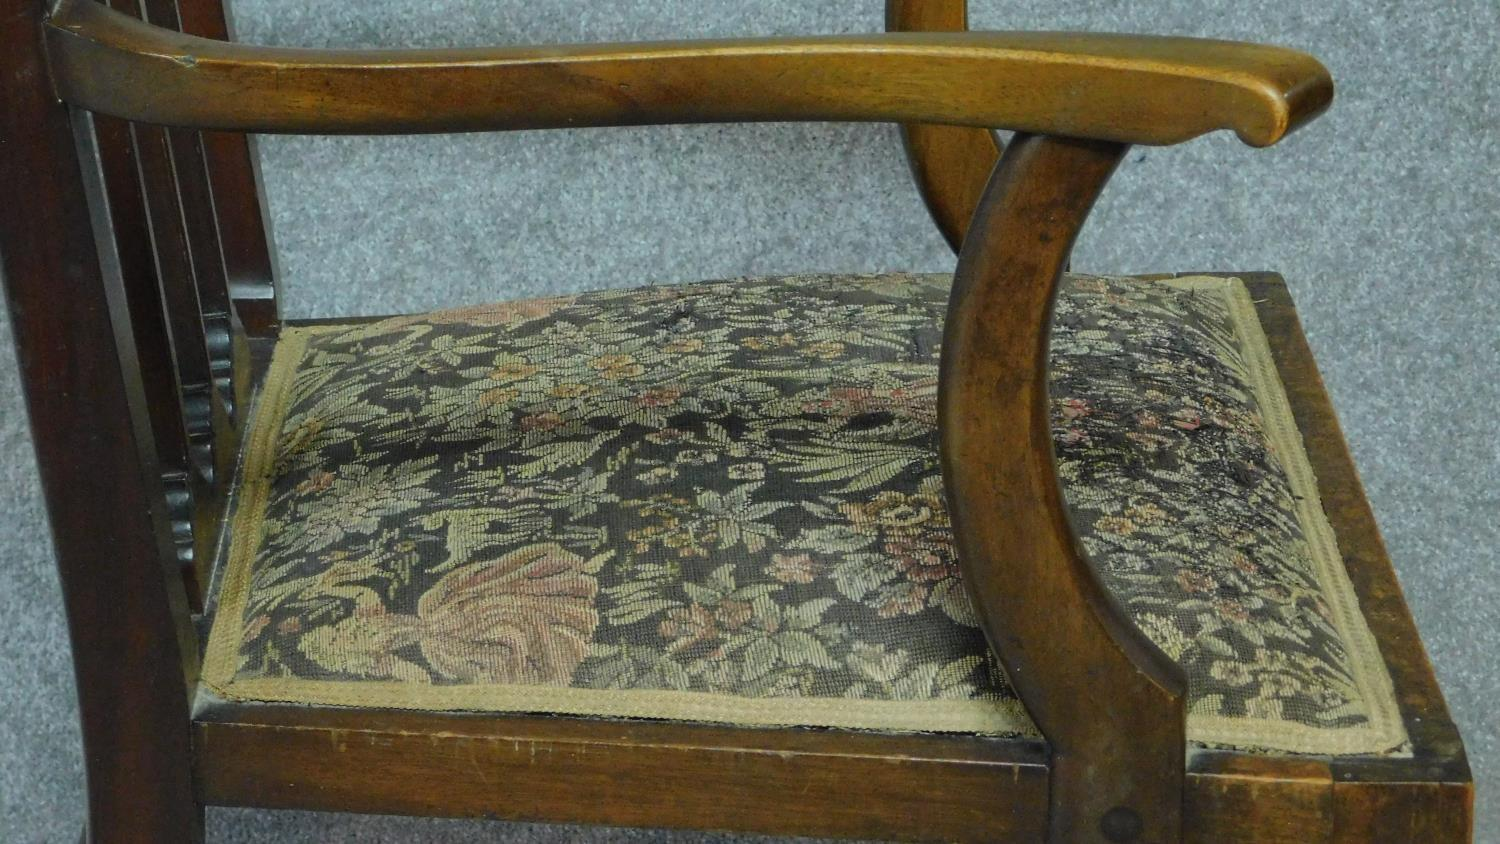 An Arts & Crafts mahogany and satinwood inlaid armchair with stylised motifs to the back splat in - Image 4 of 6